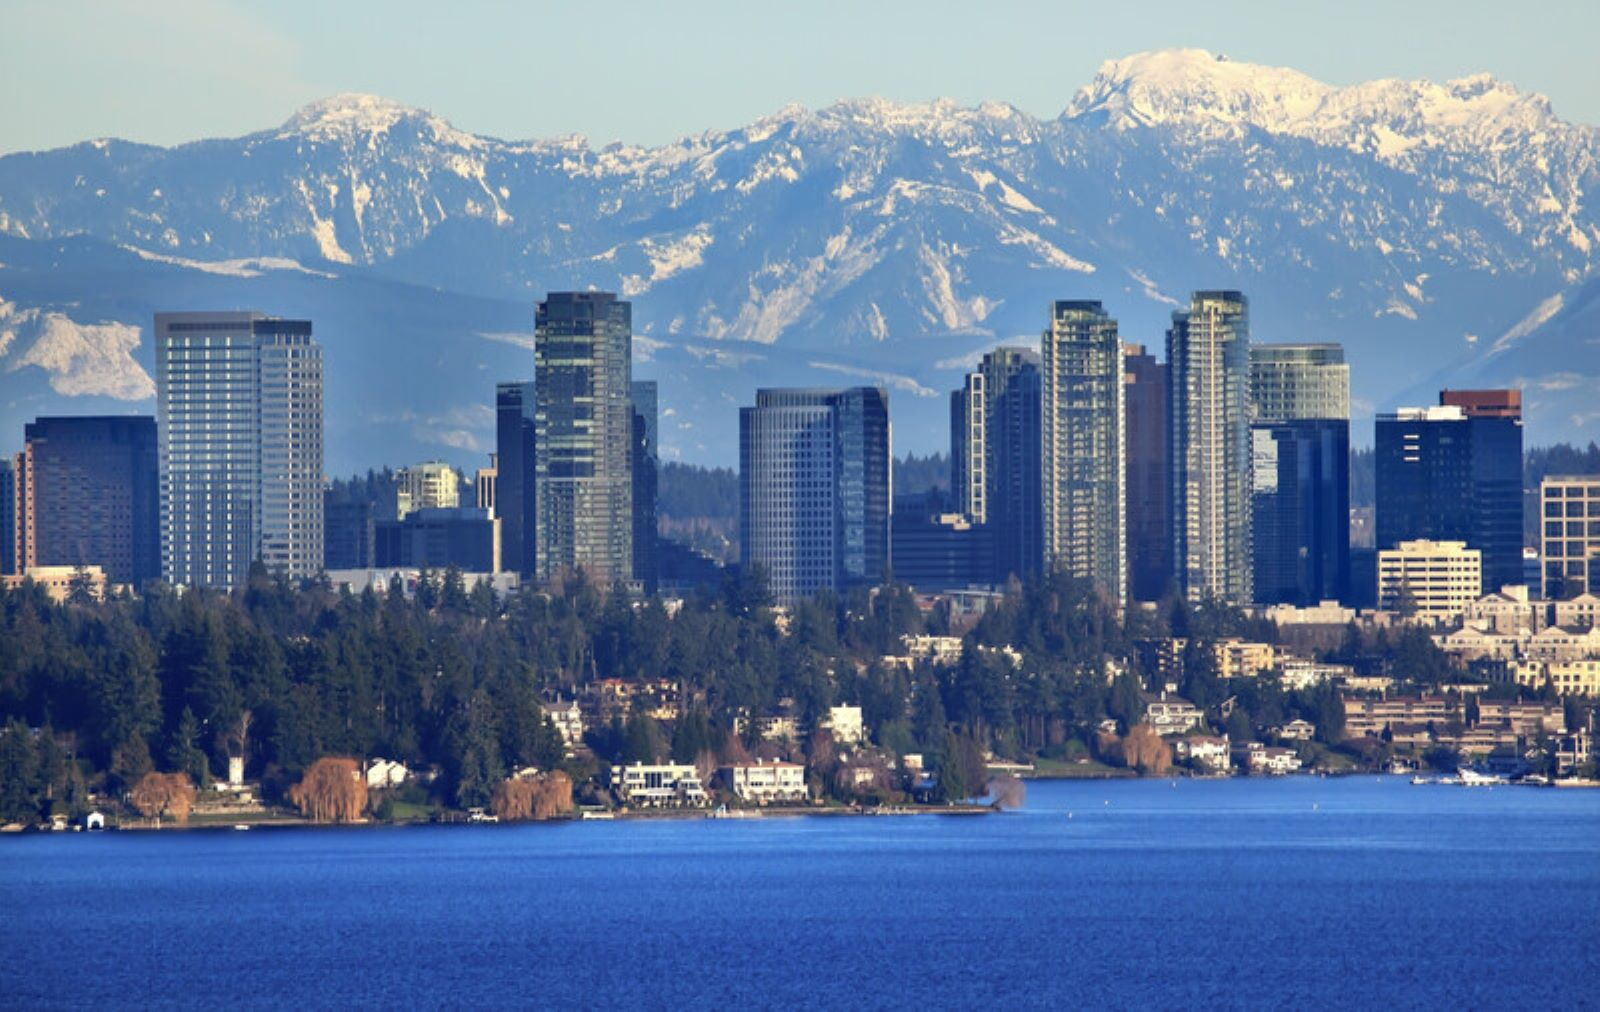 Bellevue City skyline with the Cascade Mountain Range in the back with blue skies in back and blue water in the front  of the city.